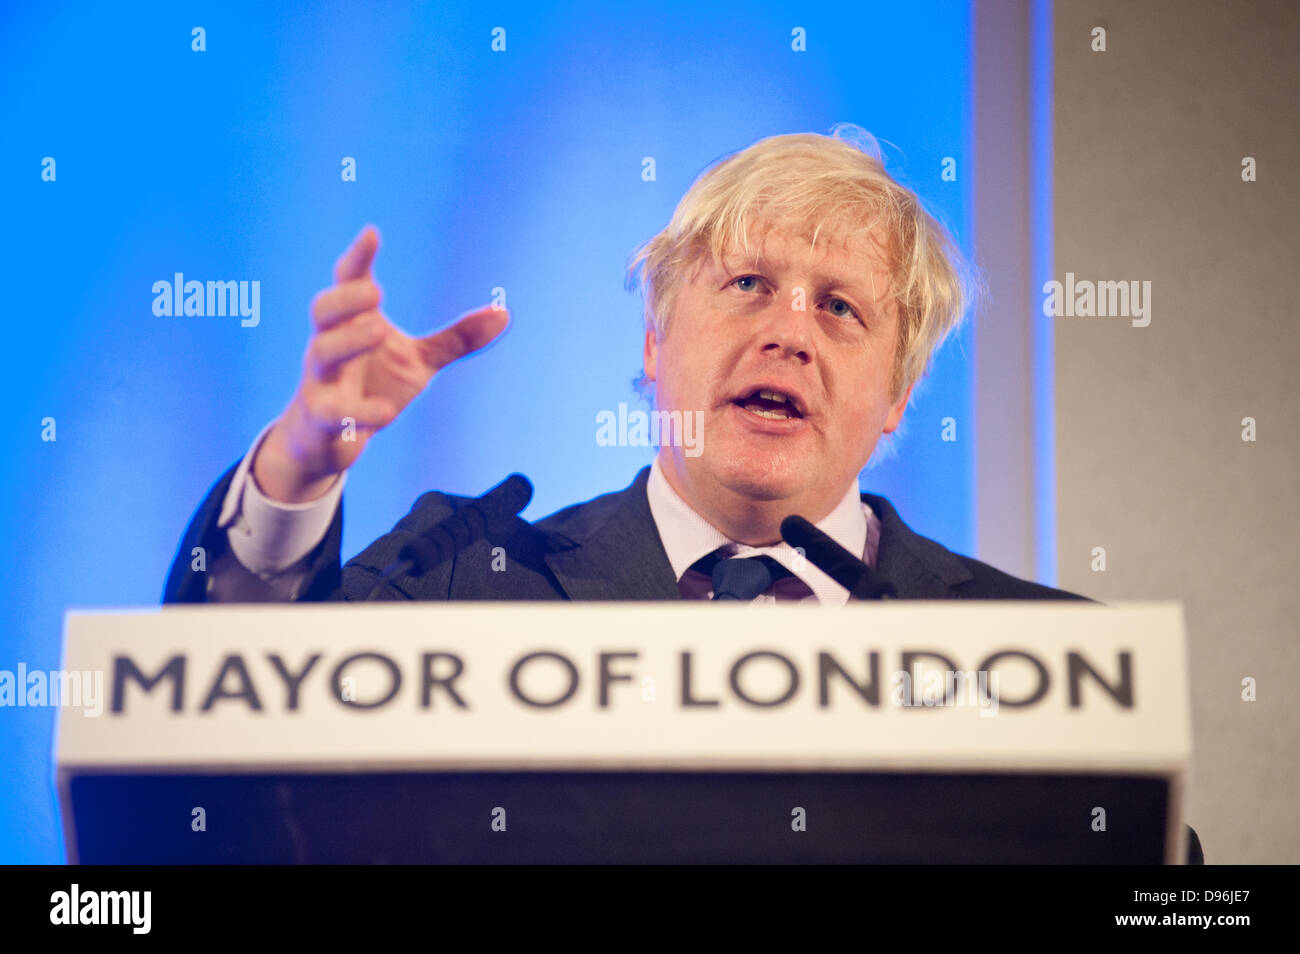 London, UK. 12th June 2013. The Mayor of London Boris Johnson answers questions of Londoners about the capital at - Stock Image